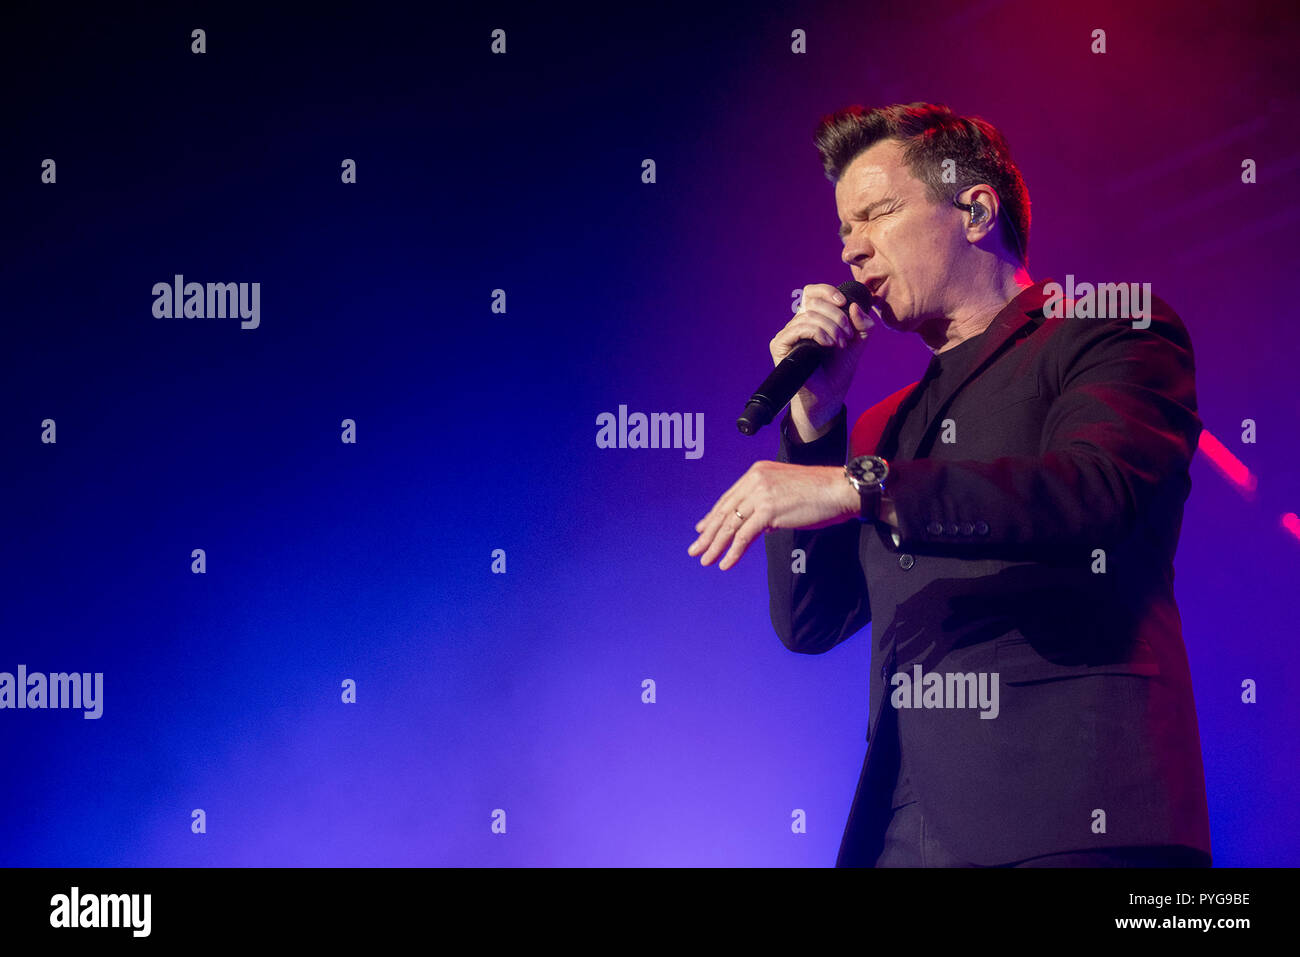 Manchester, UK. 27th October 2018. Rick Astley performs at the Manchester Arena on his UK tour, Manchester 27/10/2018 Credit: Gary Mather/Alamy Live News - Stock Image